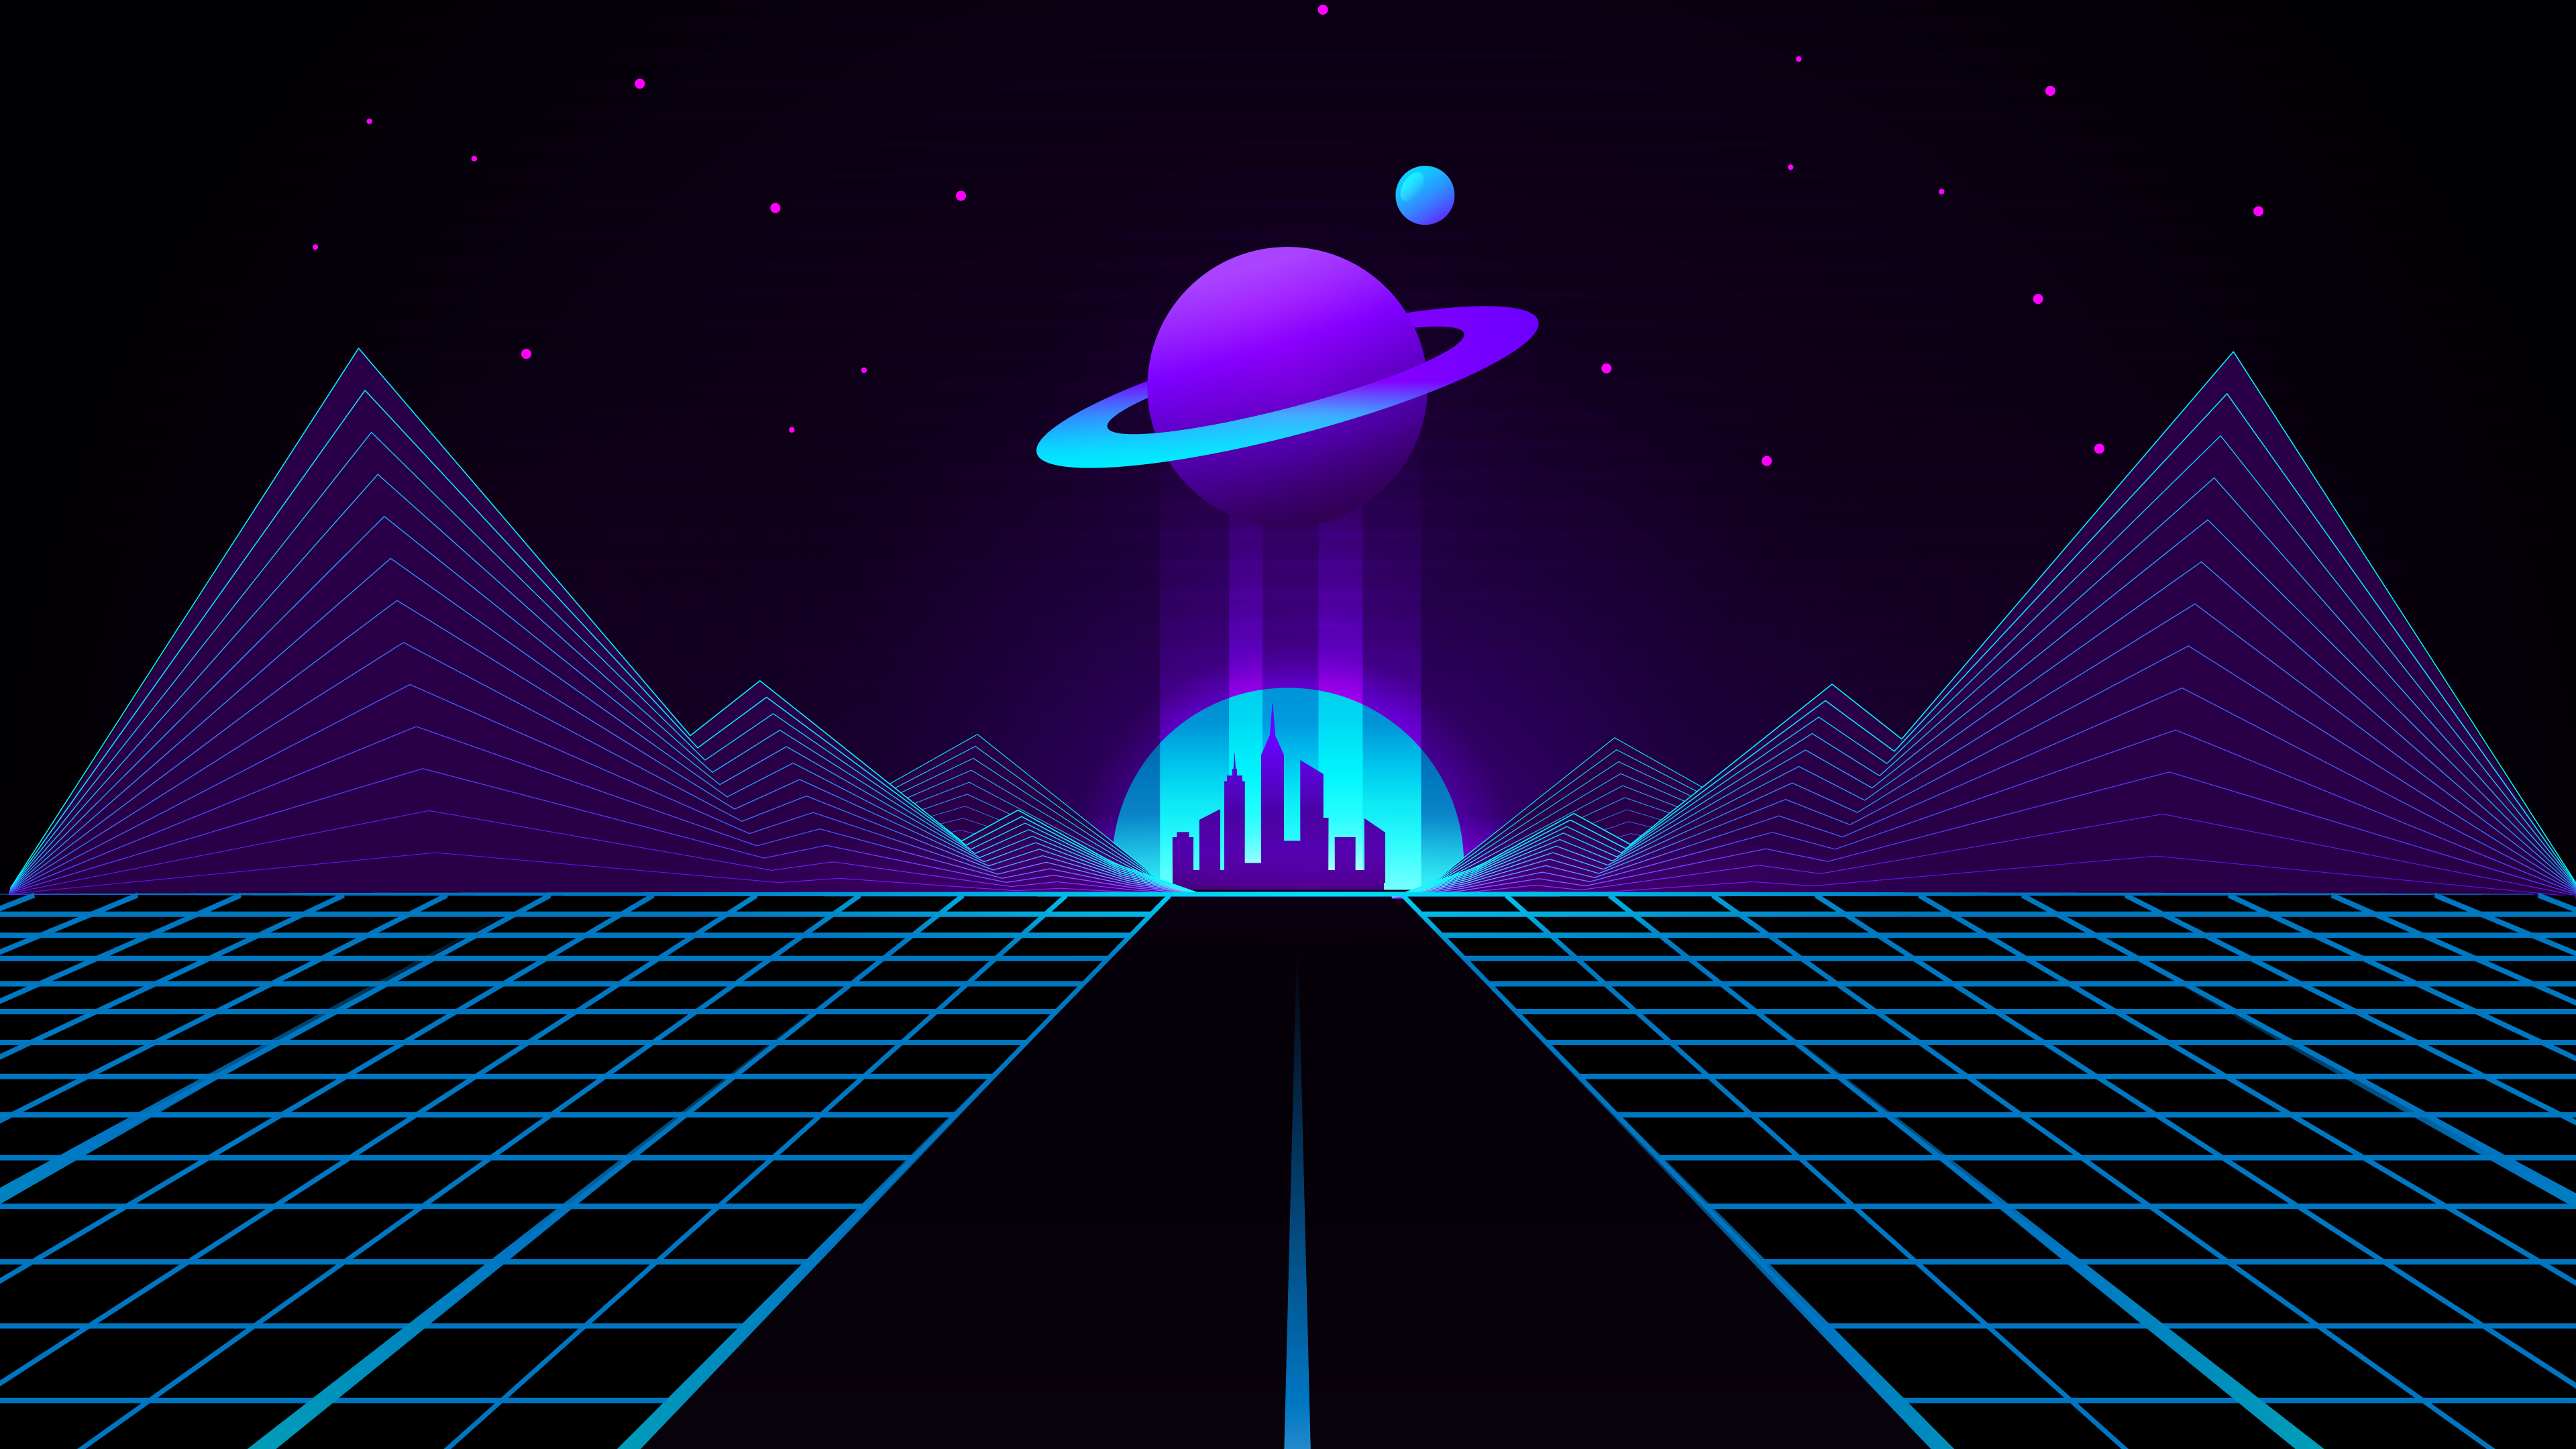 RETRO WAVE OUTRUN WALLPAPER HD FOR DESKTOP